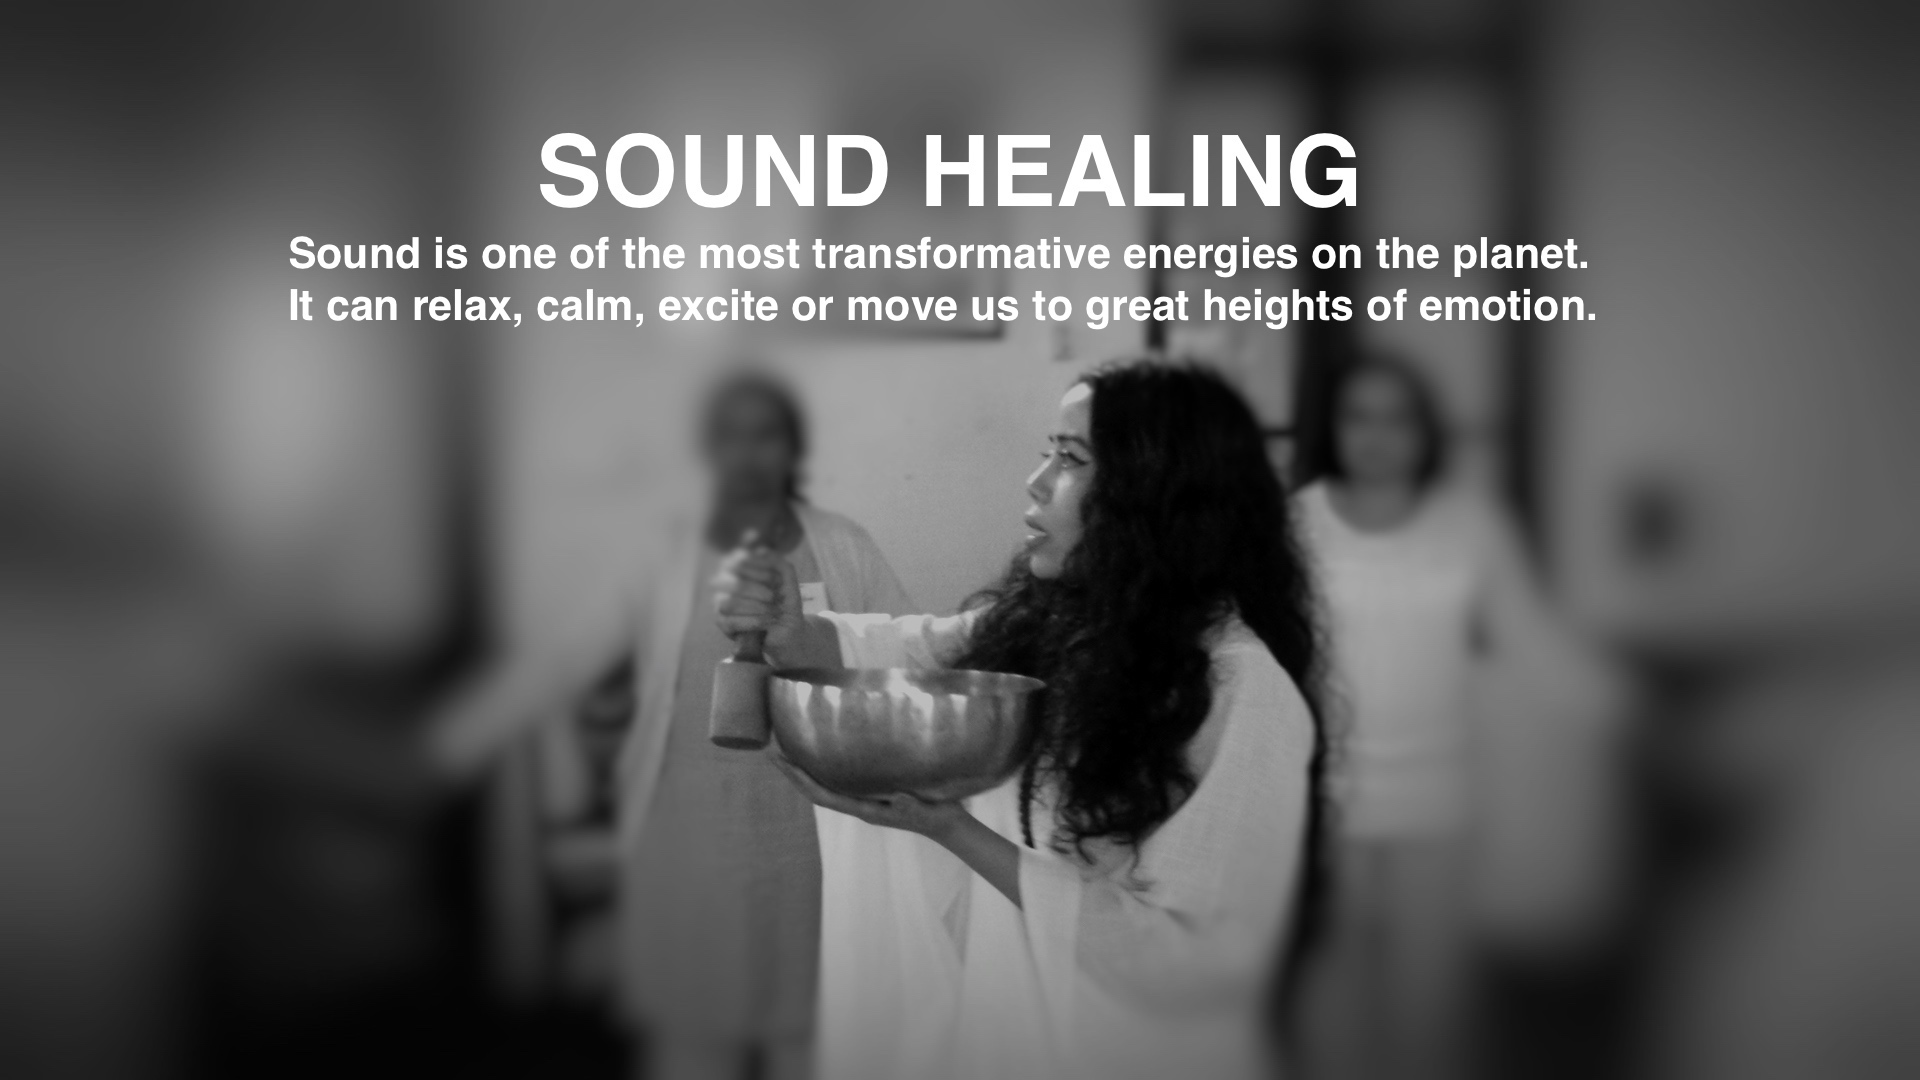 Sound Healing sessions are conducted by Bindiya Murgai of Healing Hideaway, for both individuals and groups.